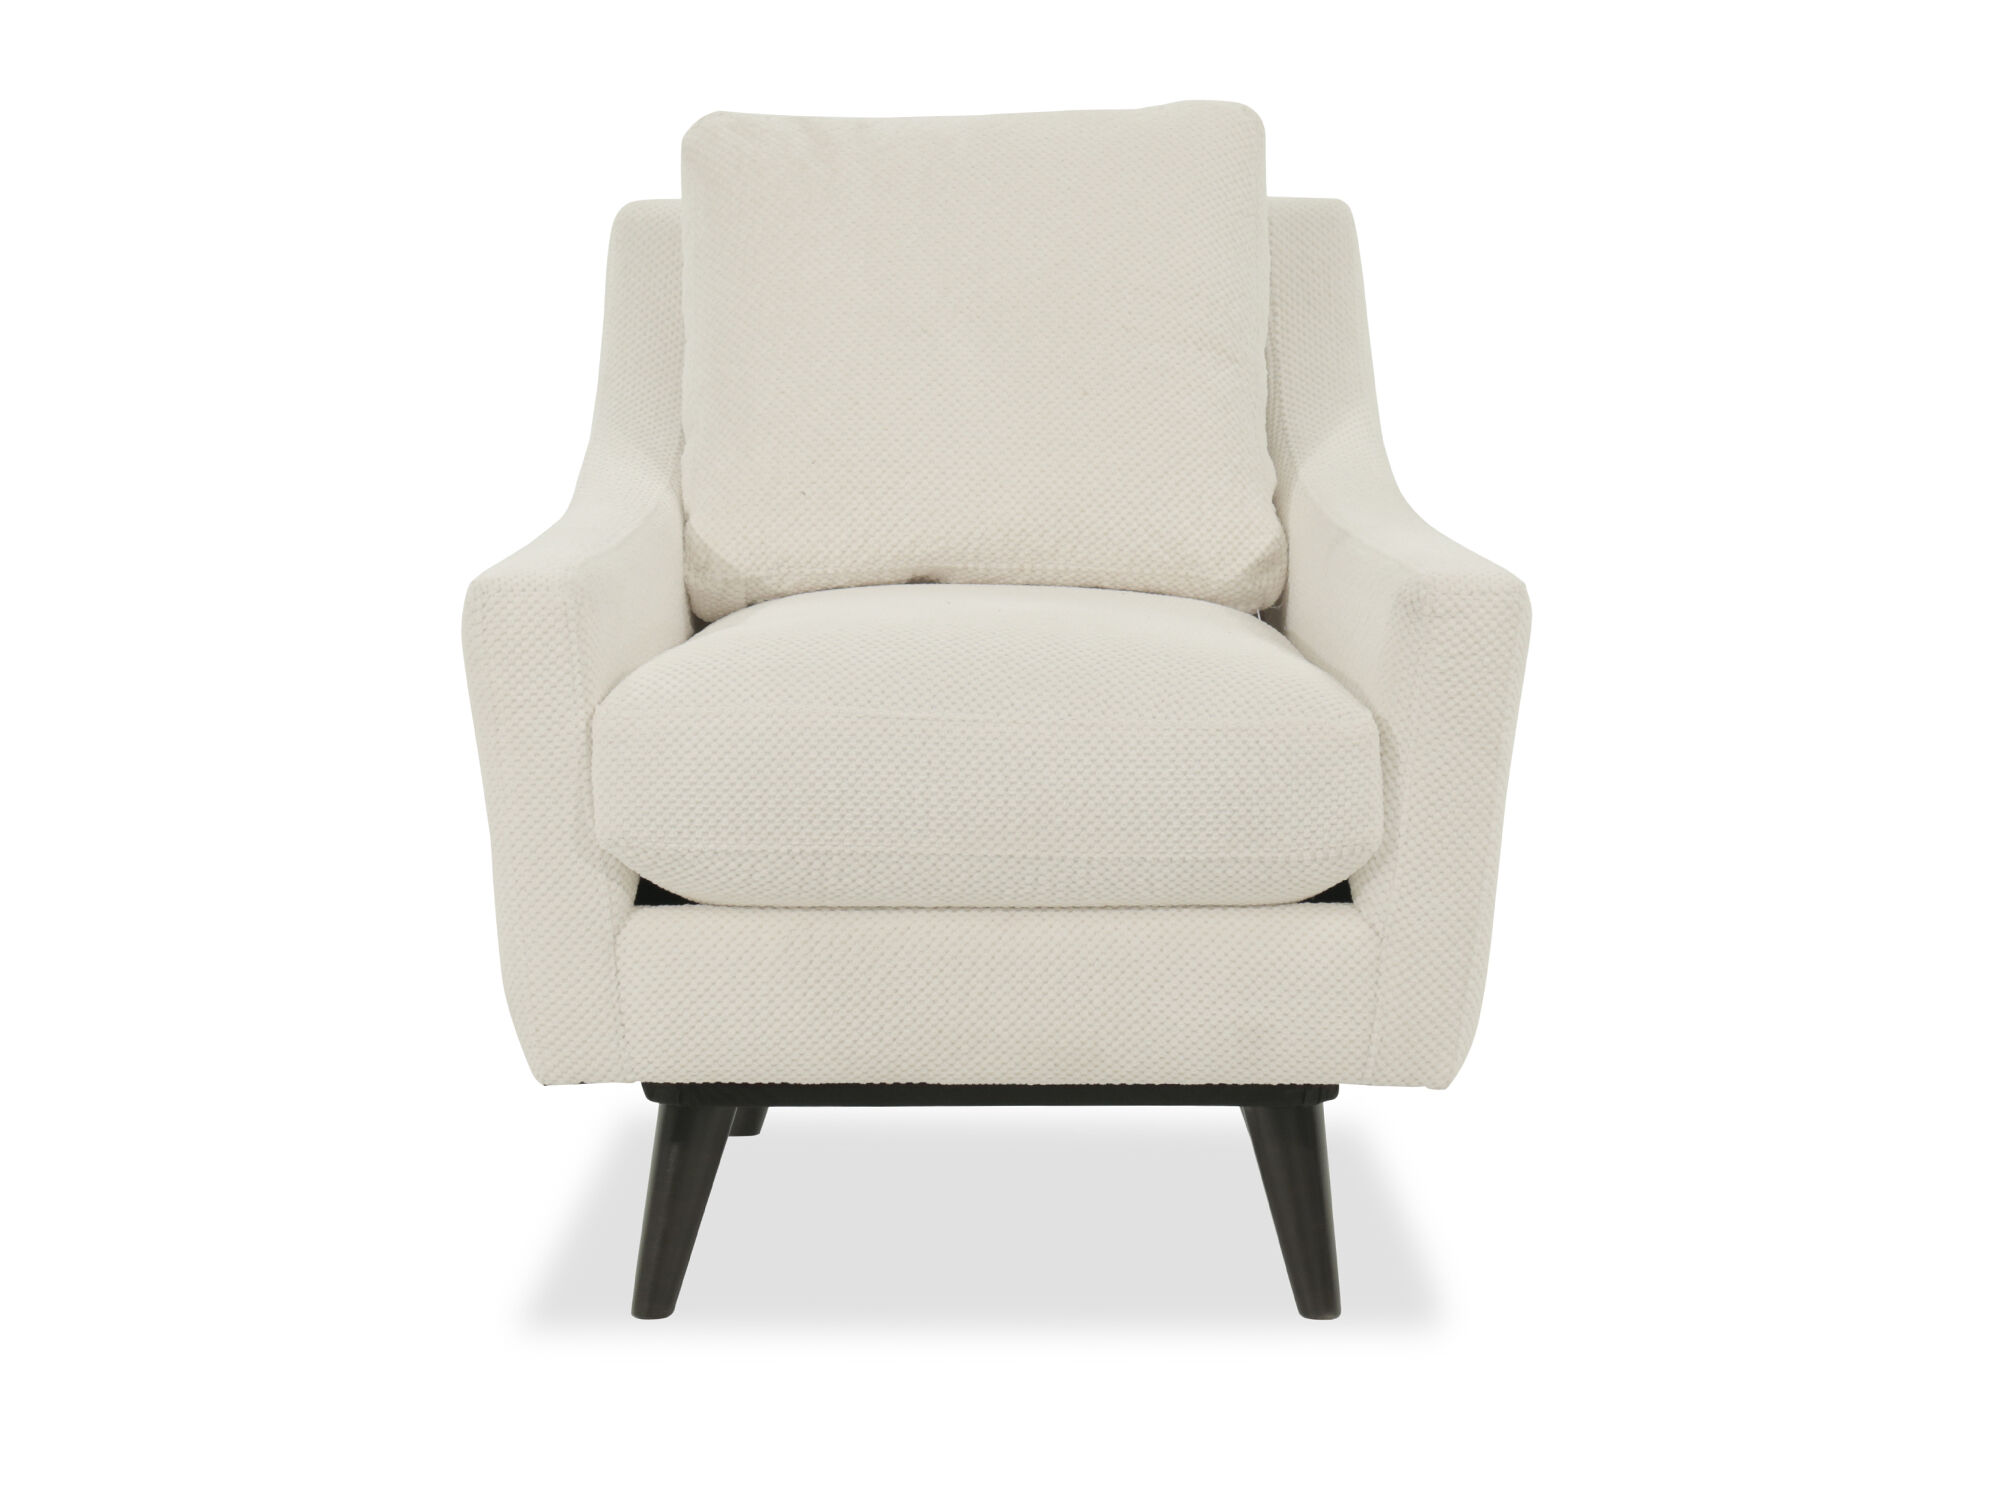 Mid Century Modern 31 Swivel Chair In White Mathis Brothers Furniture